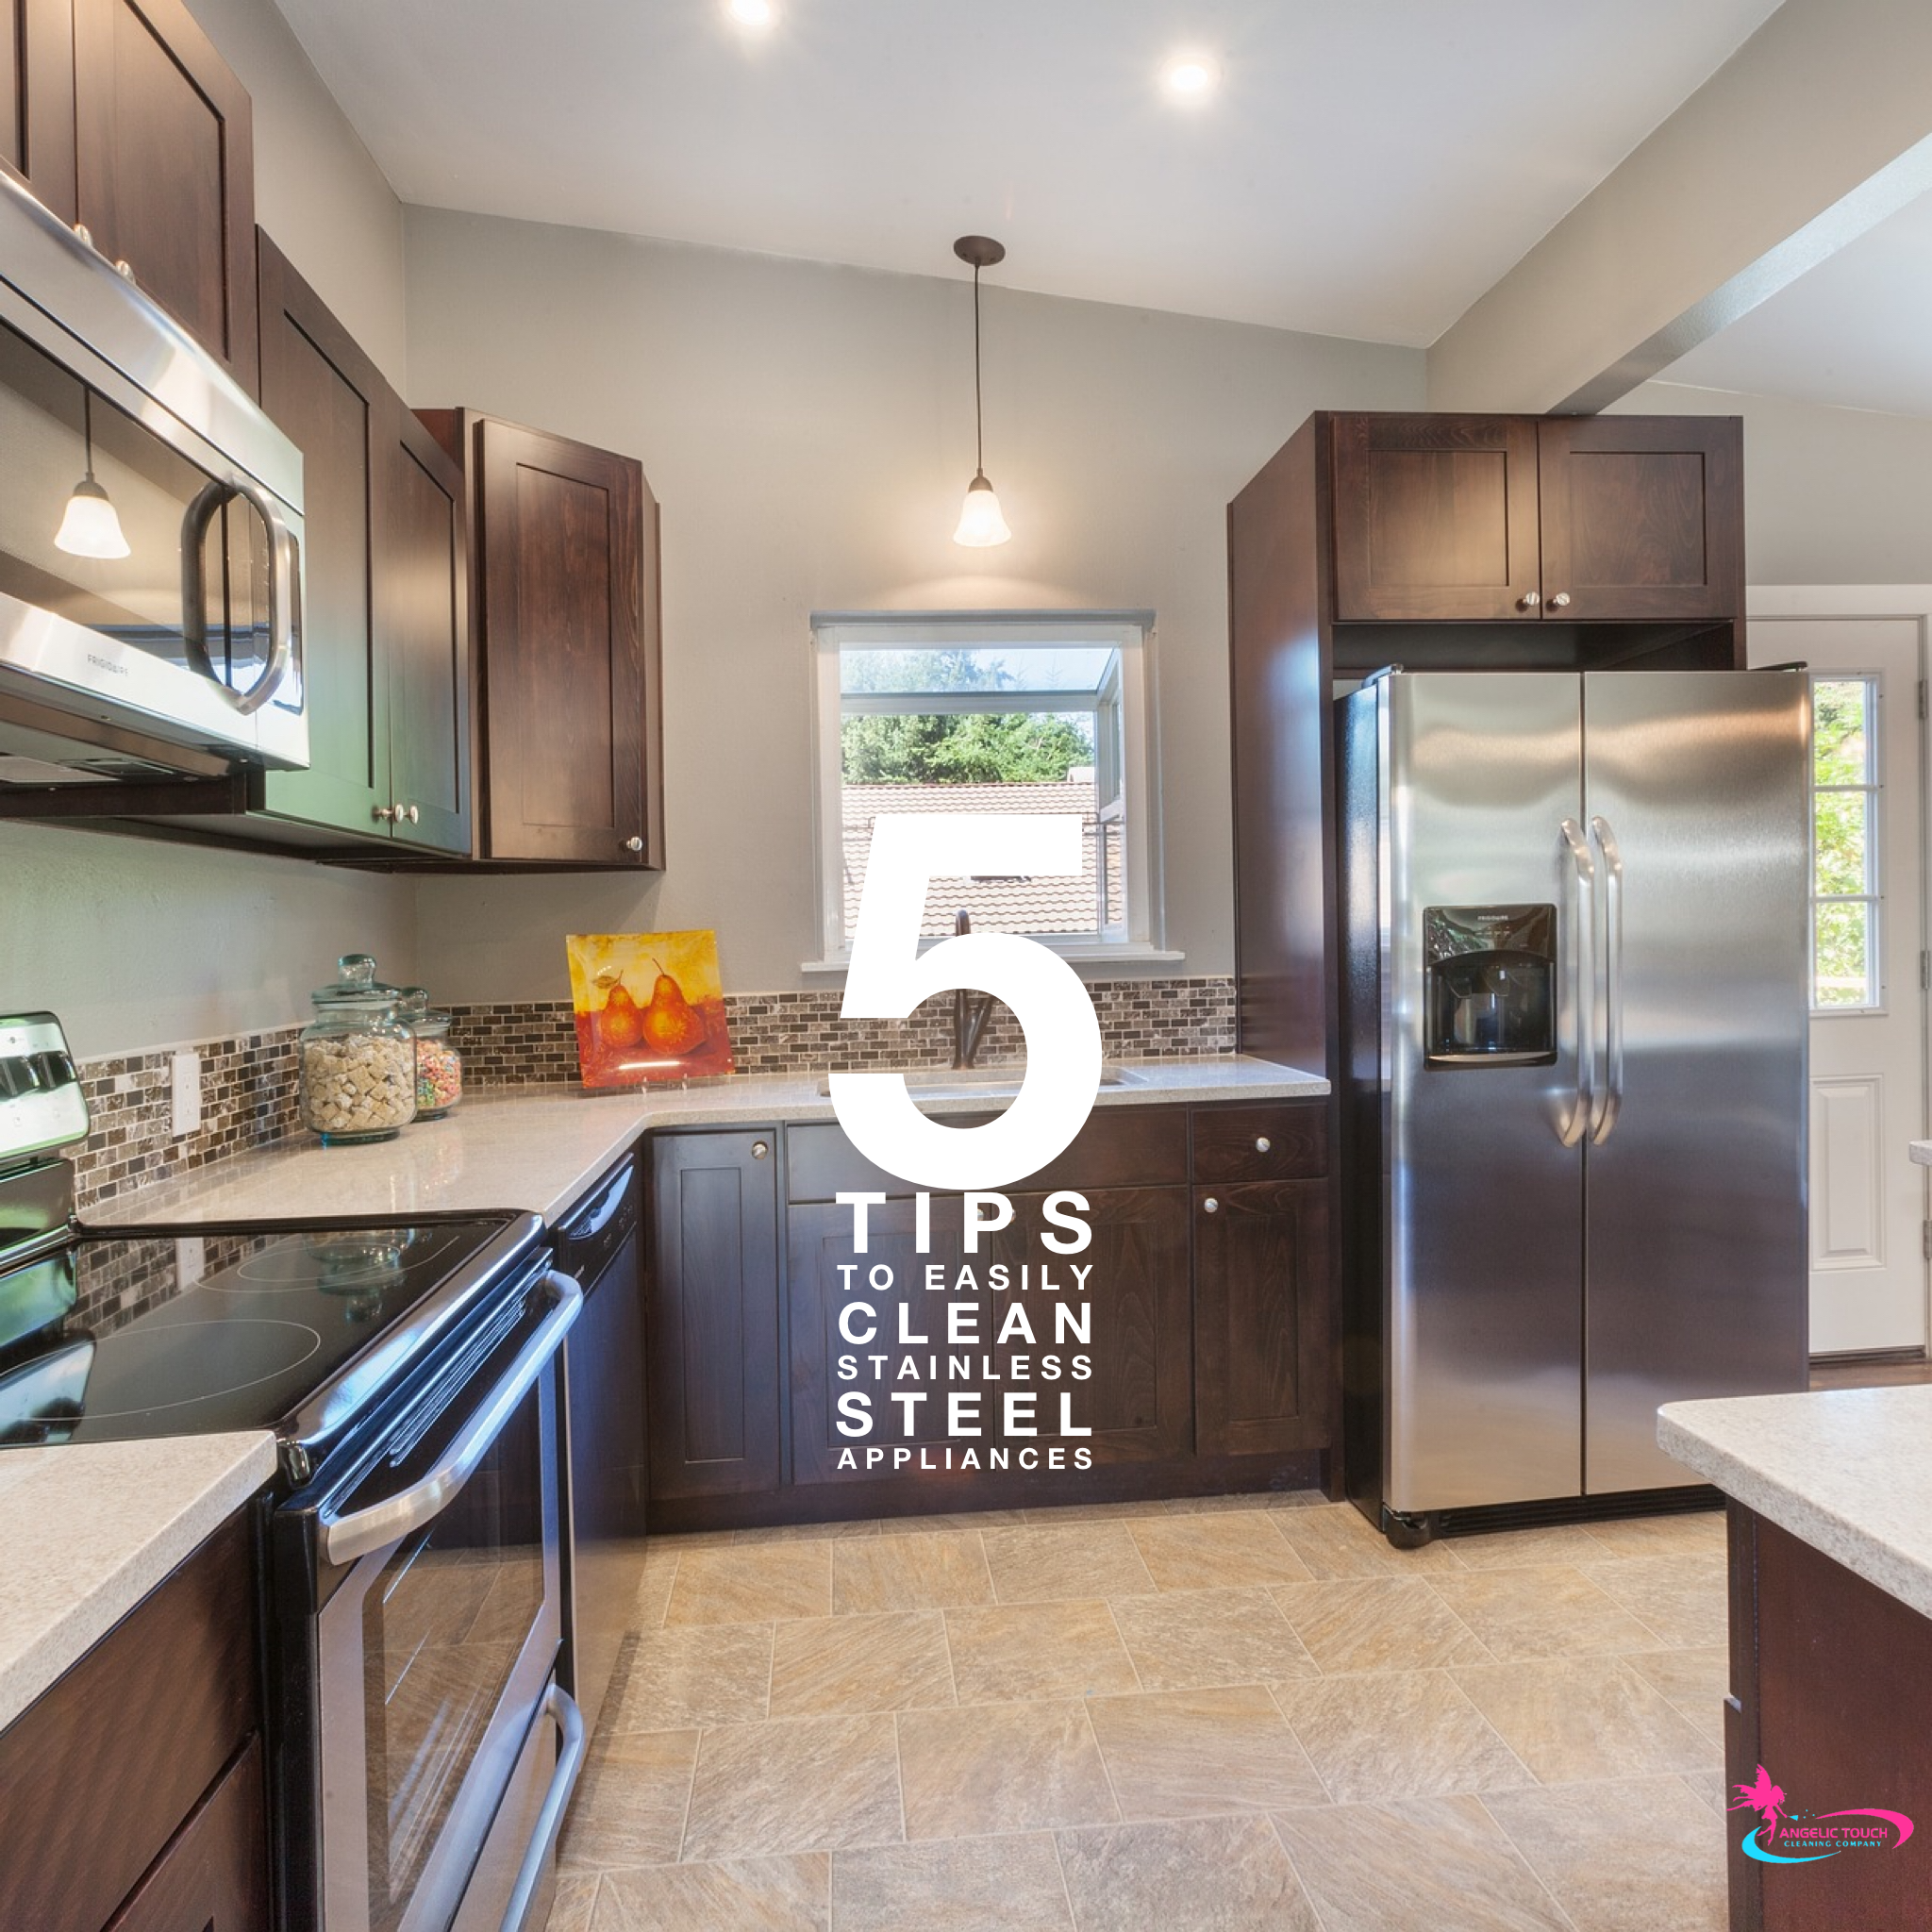 5 Tips To Easily Clean Stainless Steel Appliances